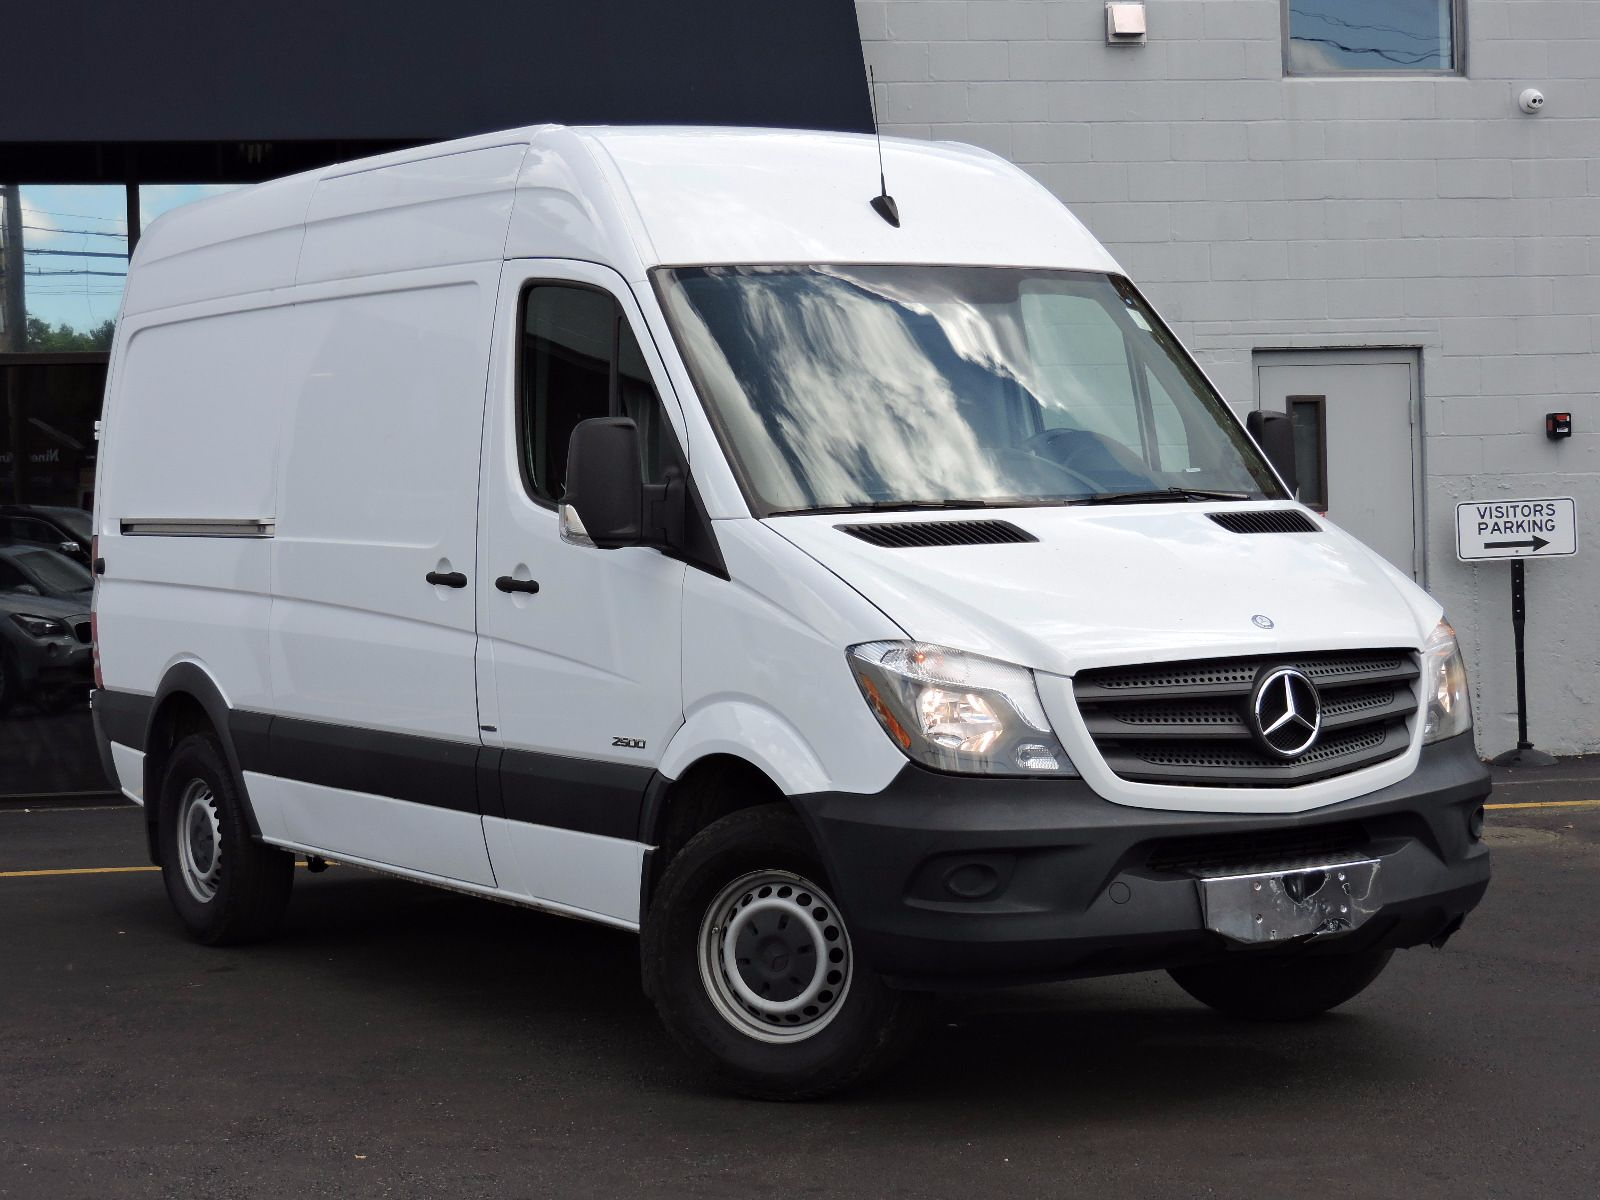 van sprinter cargo detail new roof benz image rwd standard vans mercedes work